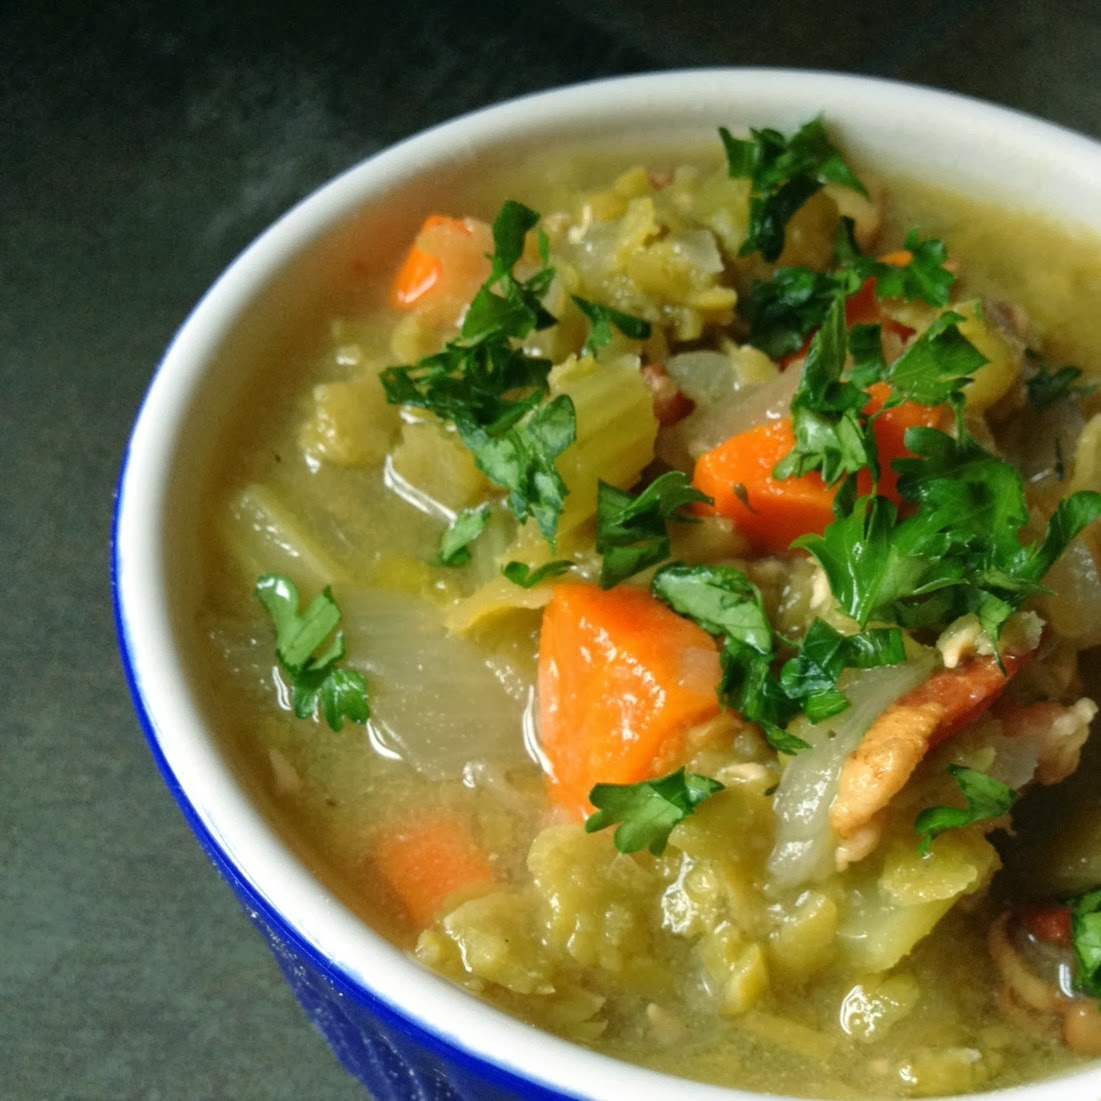 ... from Scratch®: The BEST Slow Cooker Split Pea Soup from Food Bloggers